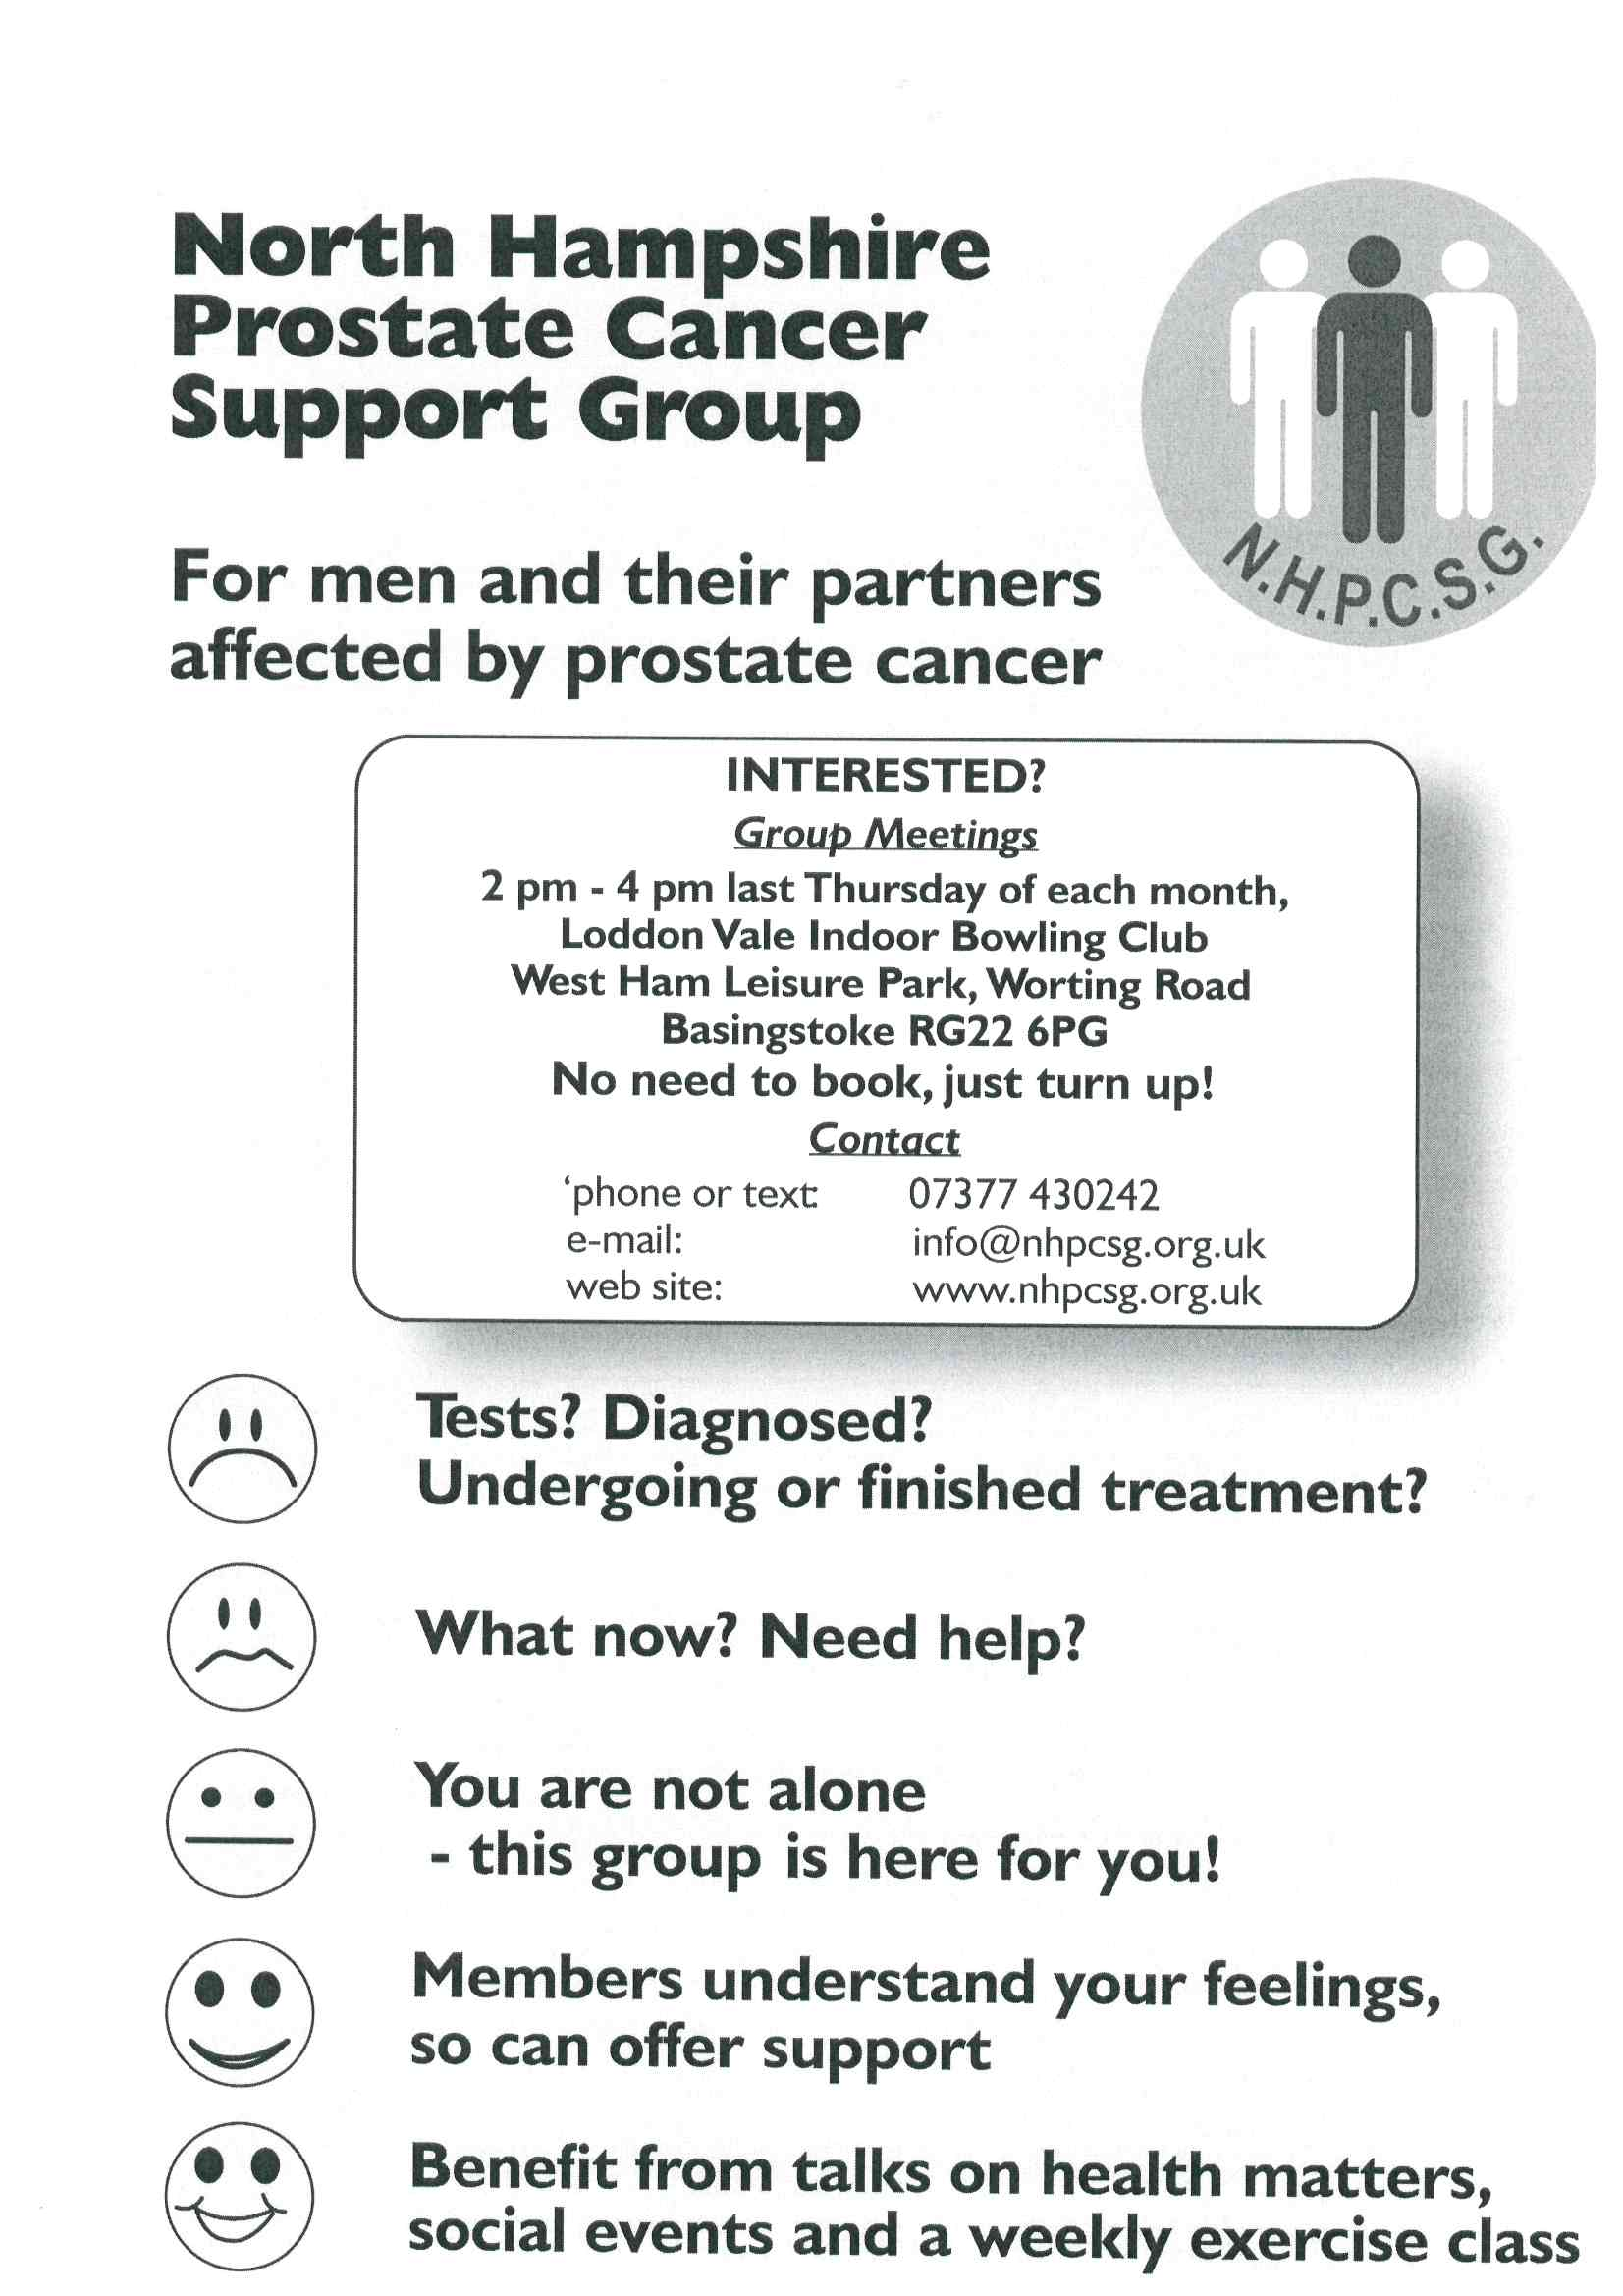 Full details of the regular meetings of North Hampshire Prostate Cancer Support Group